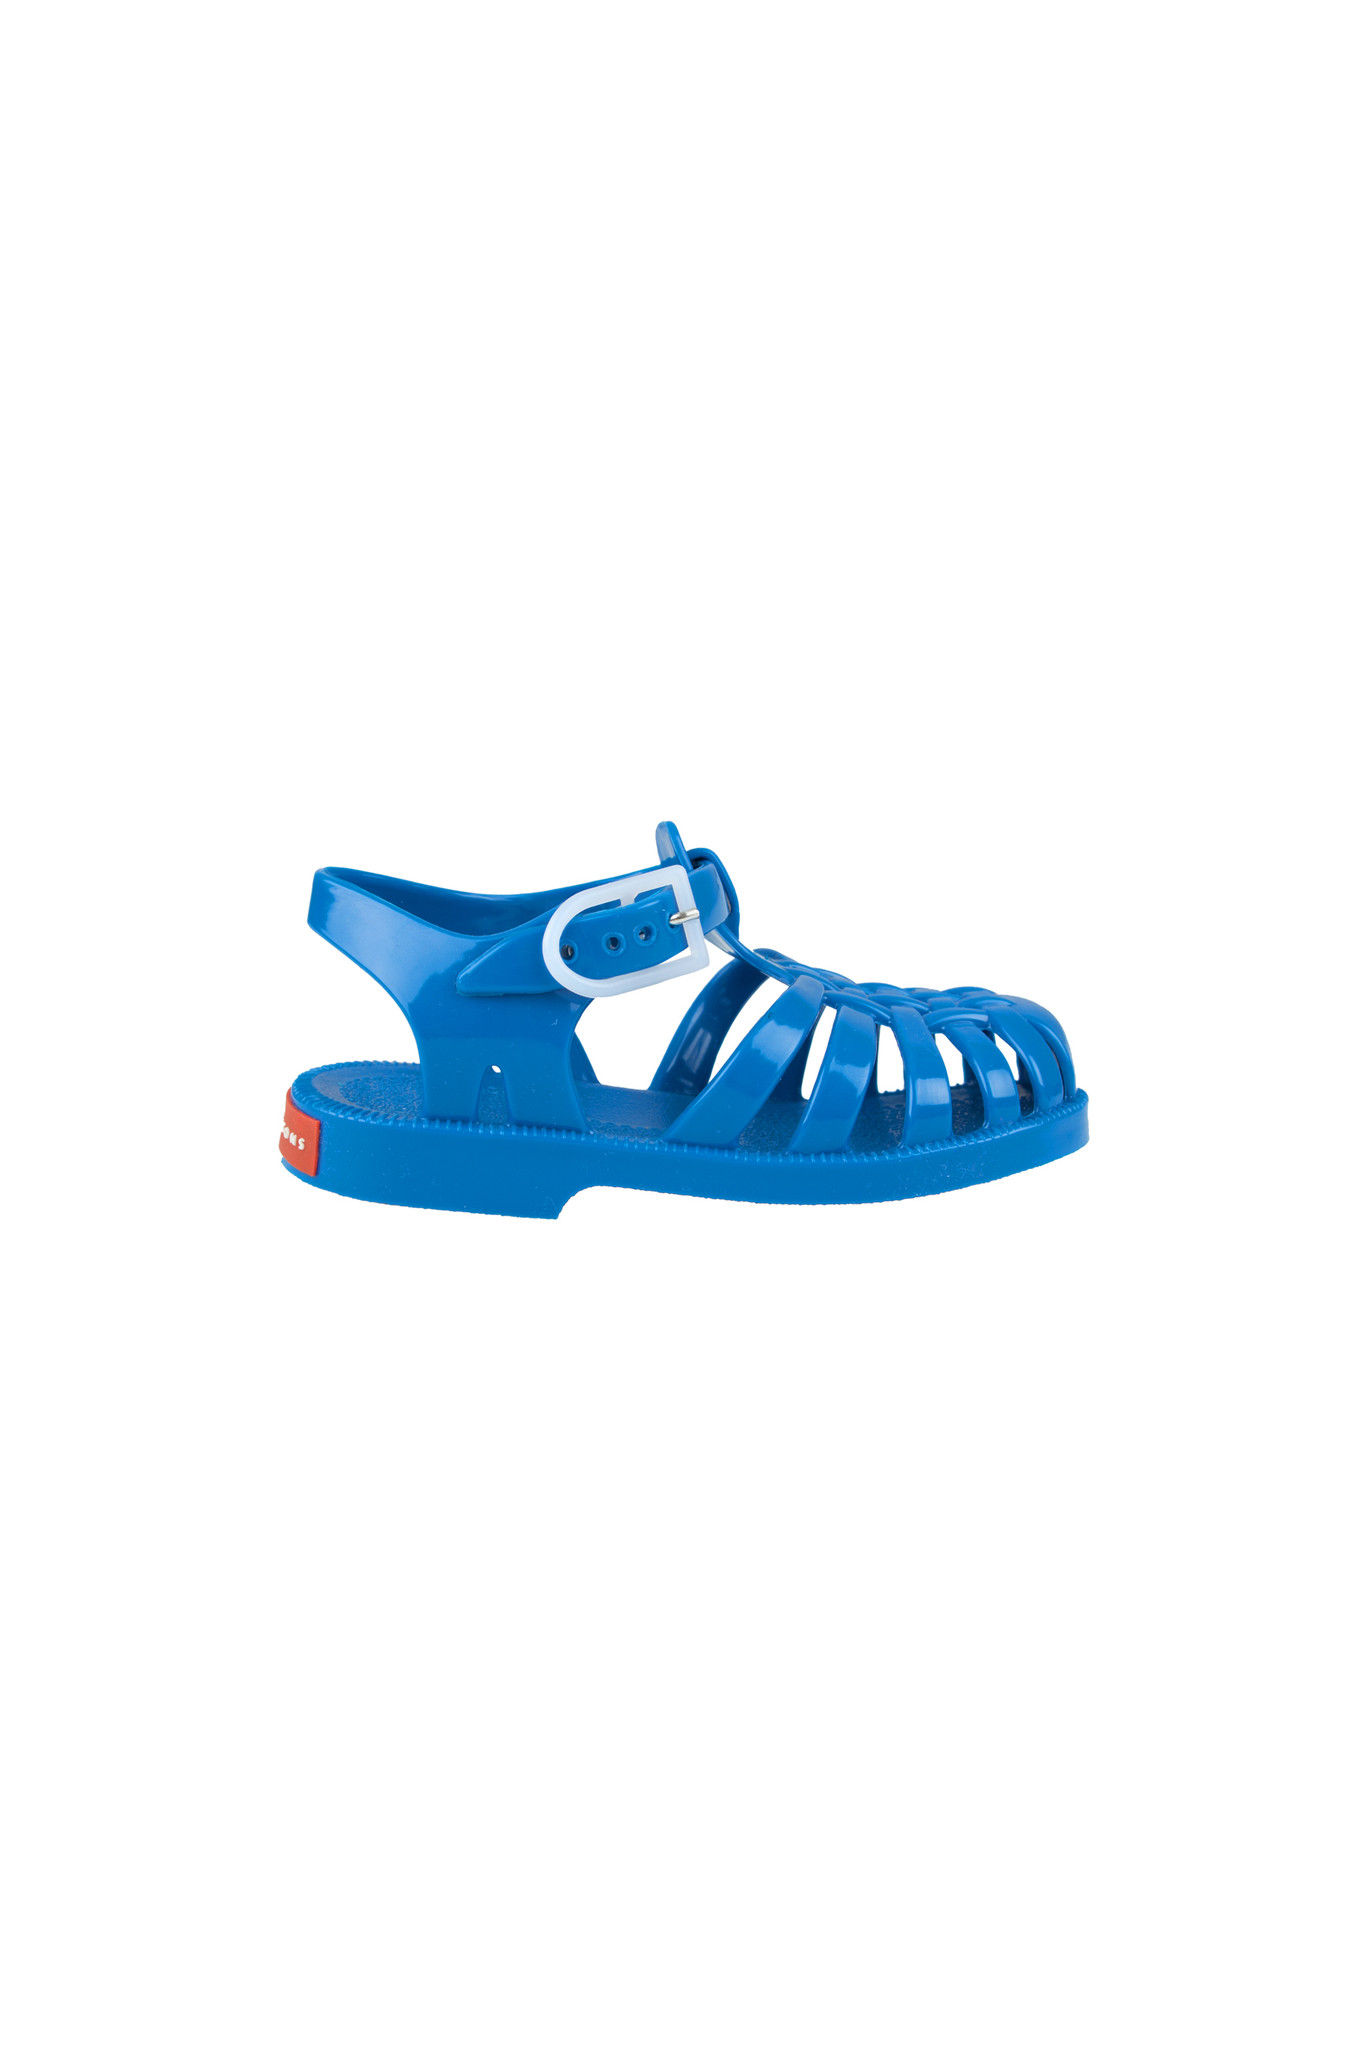 JELLY SANDALS - Cerulean Blue-3